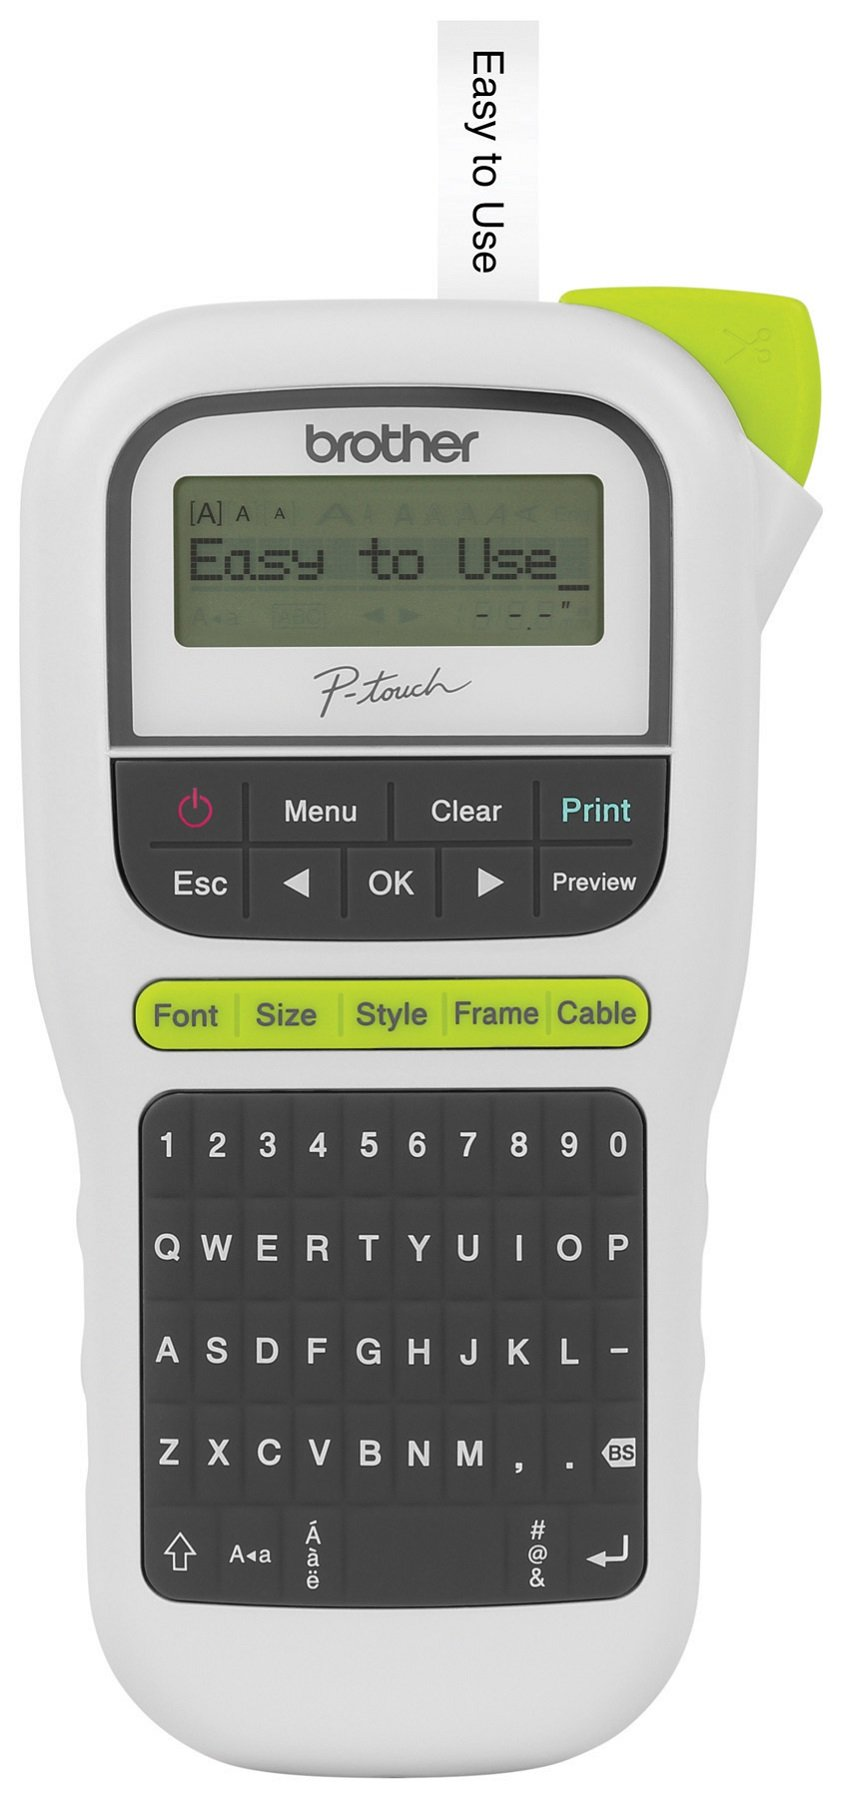 Brother P-touch, PTH110, Easy Portable Label Maker, Lightweight, QWERTY Keyboard, One-Touch Keys, White by Brother